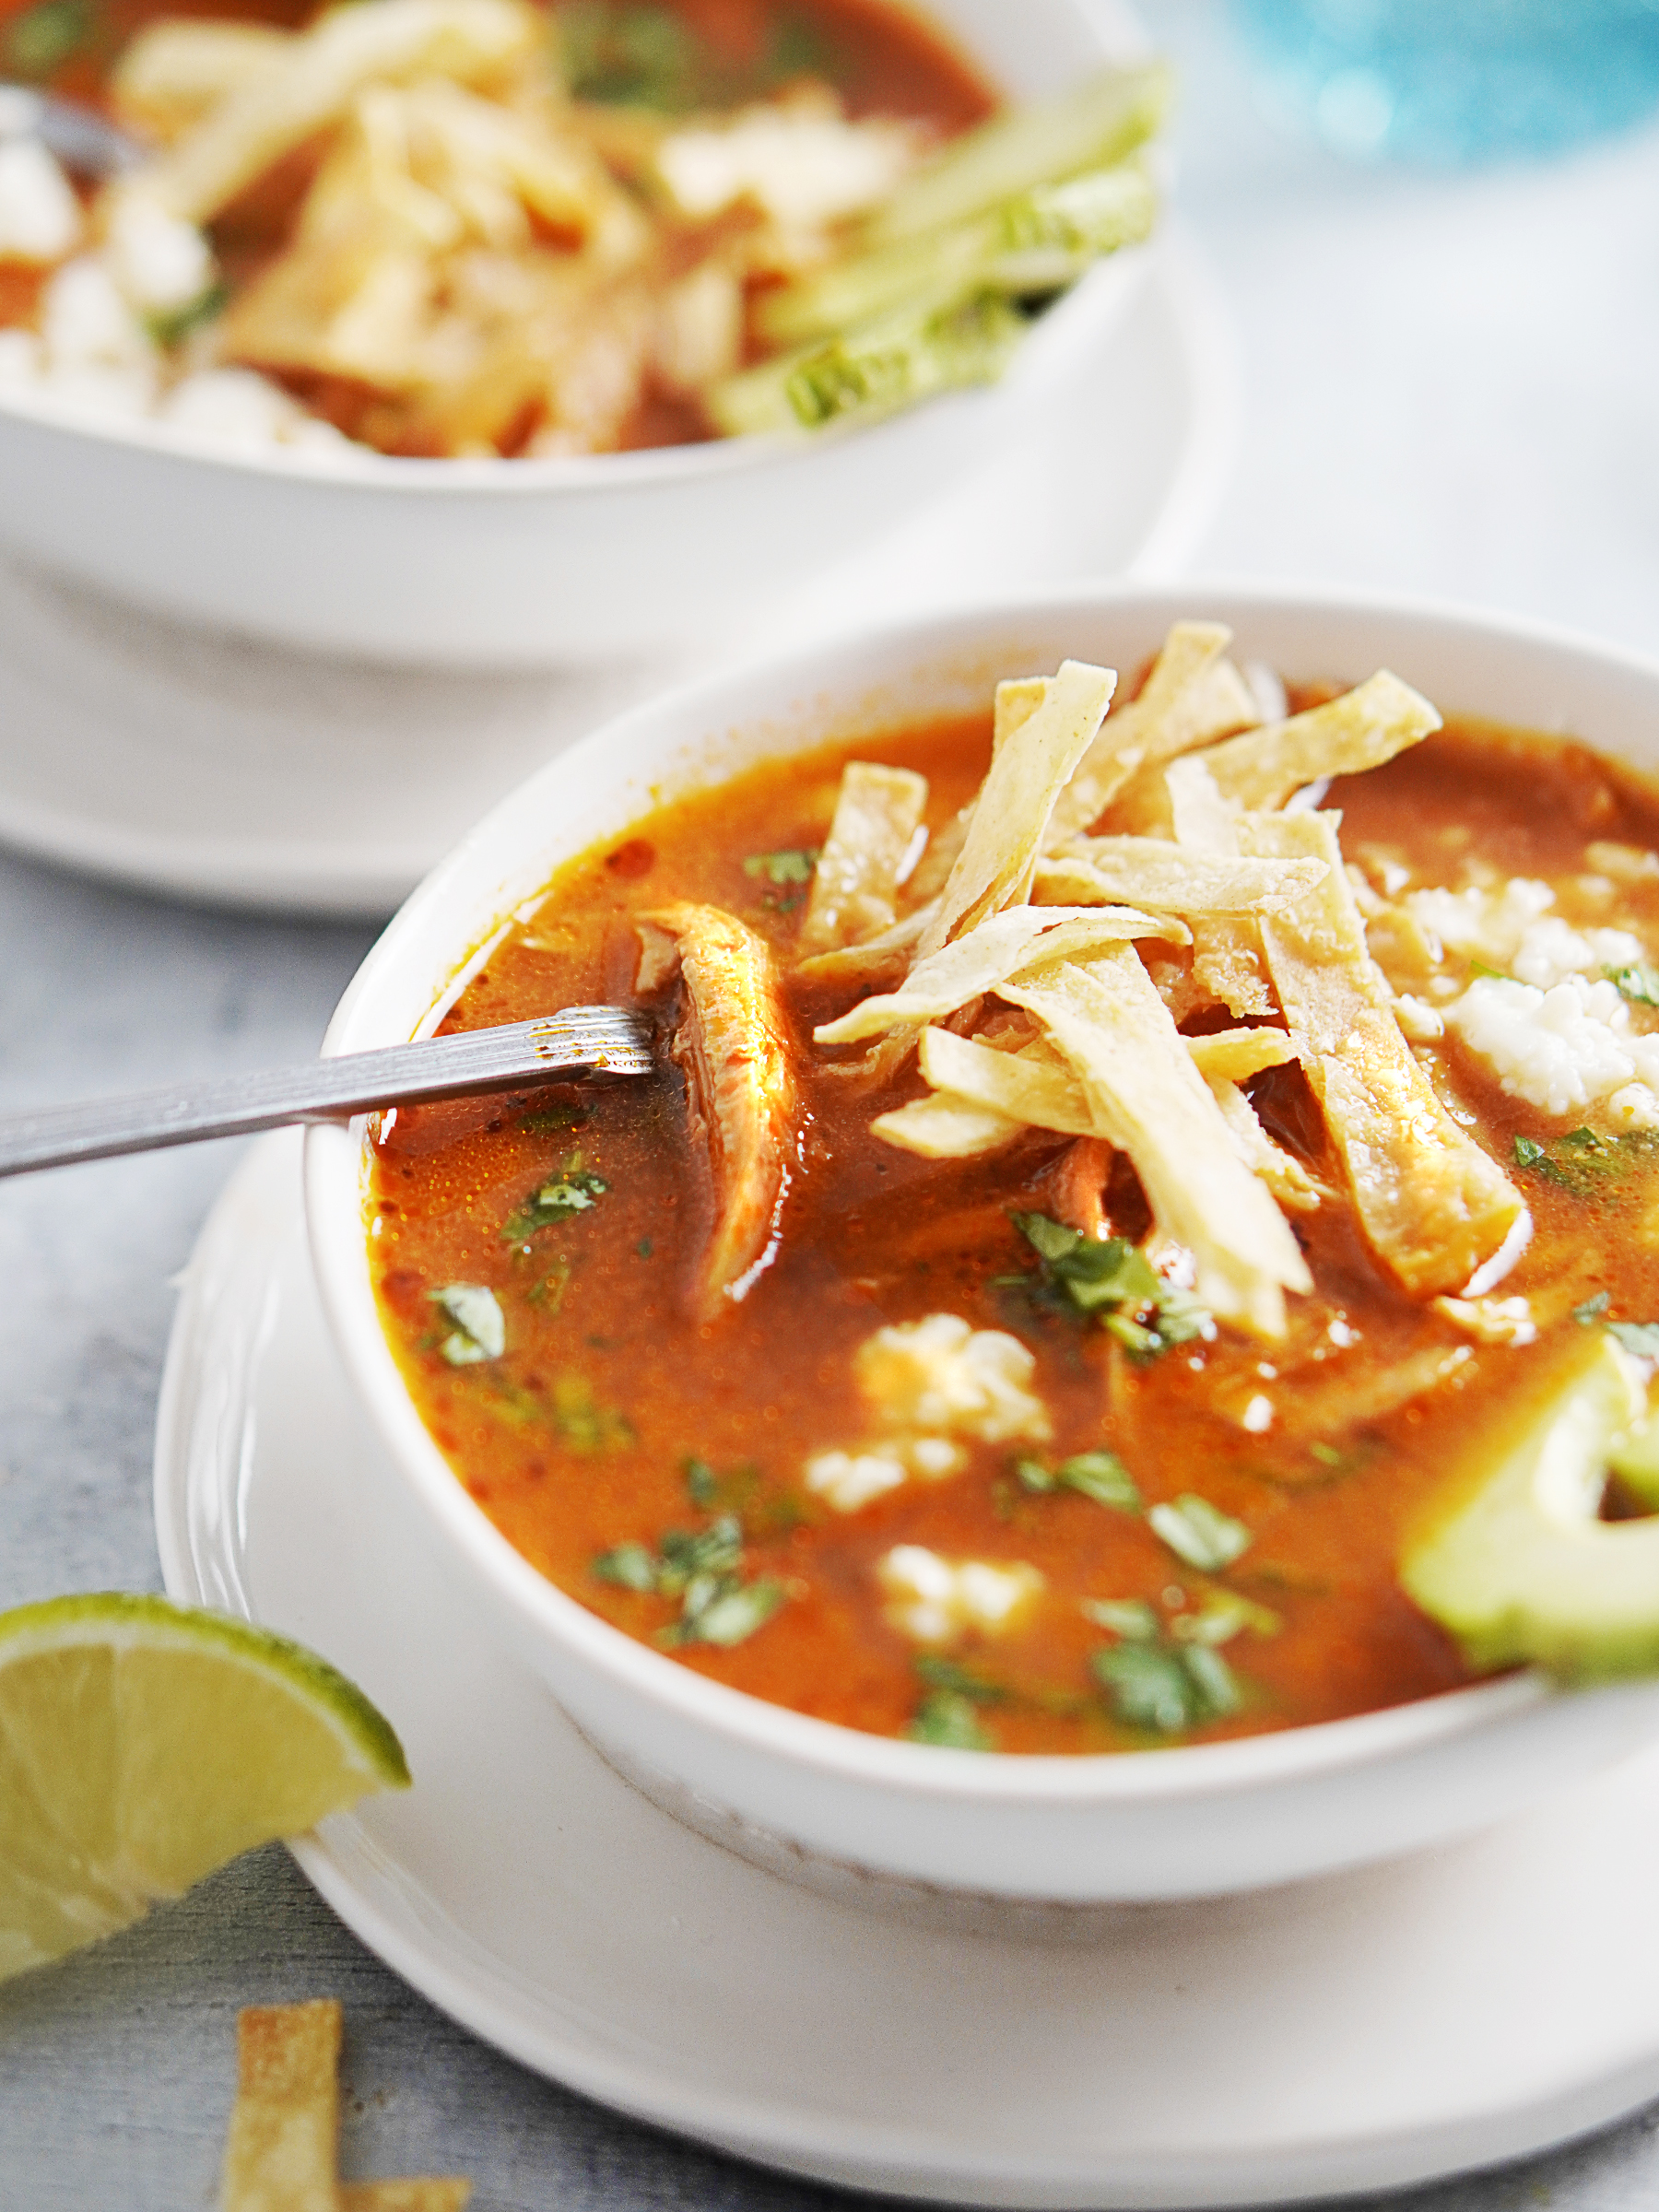 Healthy Mexican Soup topped with tortilla chips